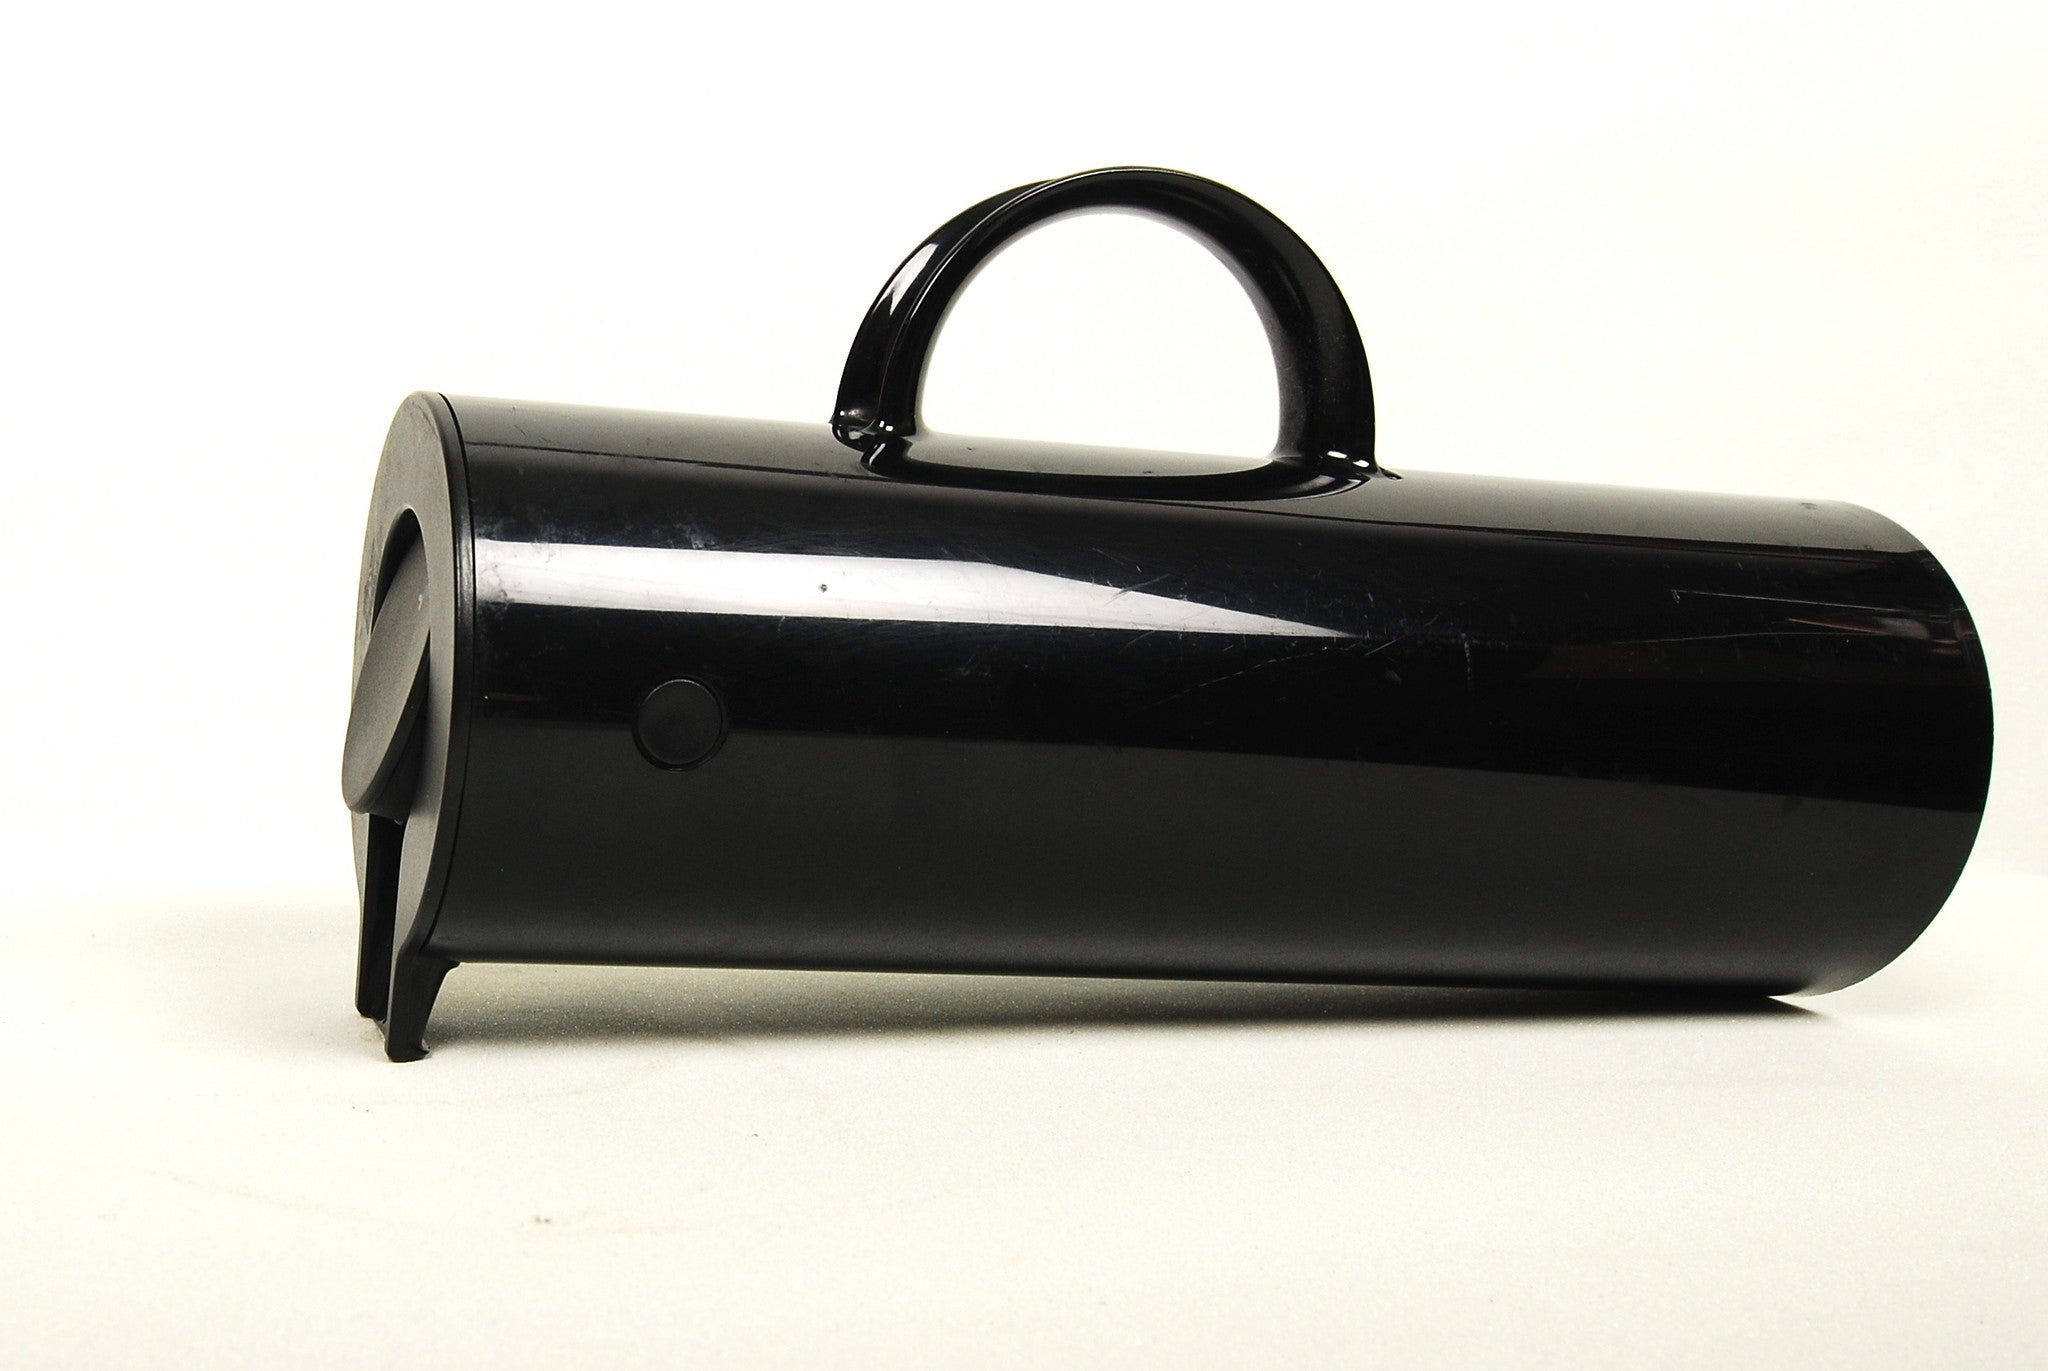 Thermos by Erik Magnussen for Stelton